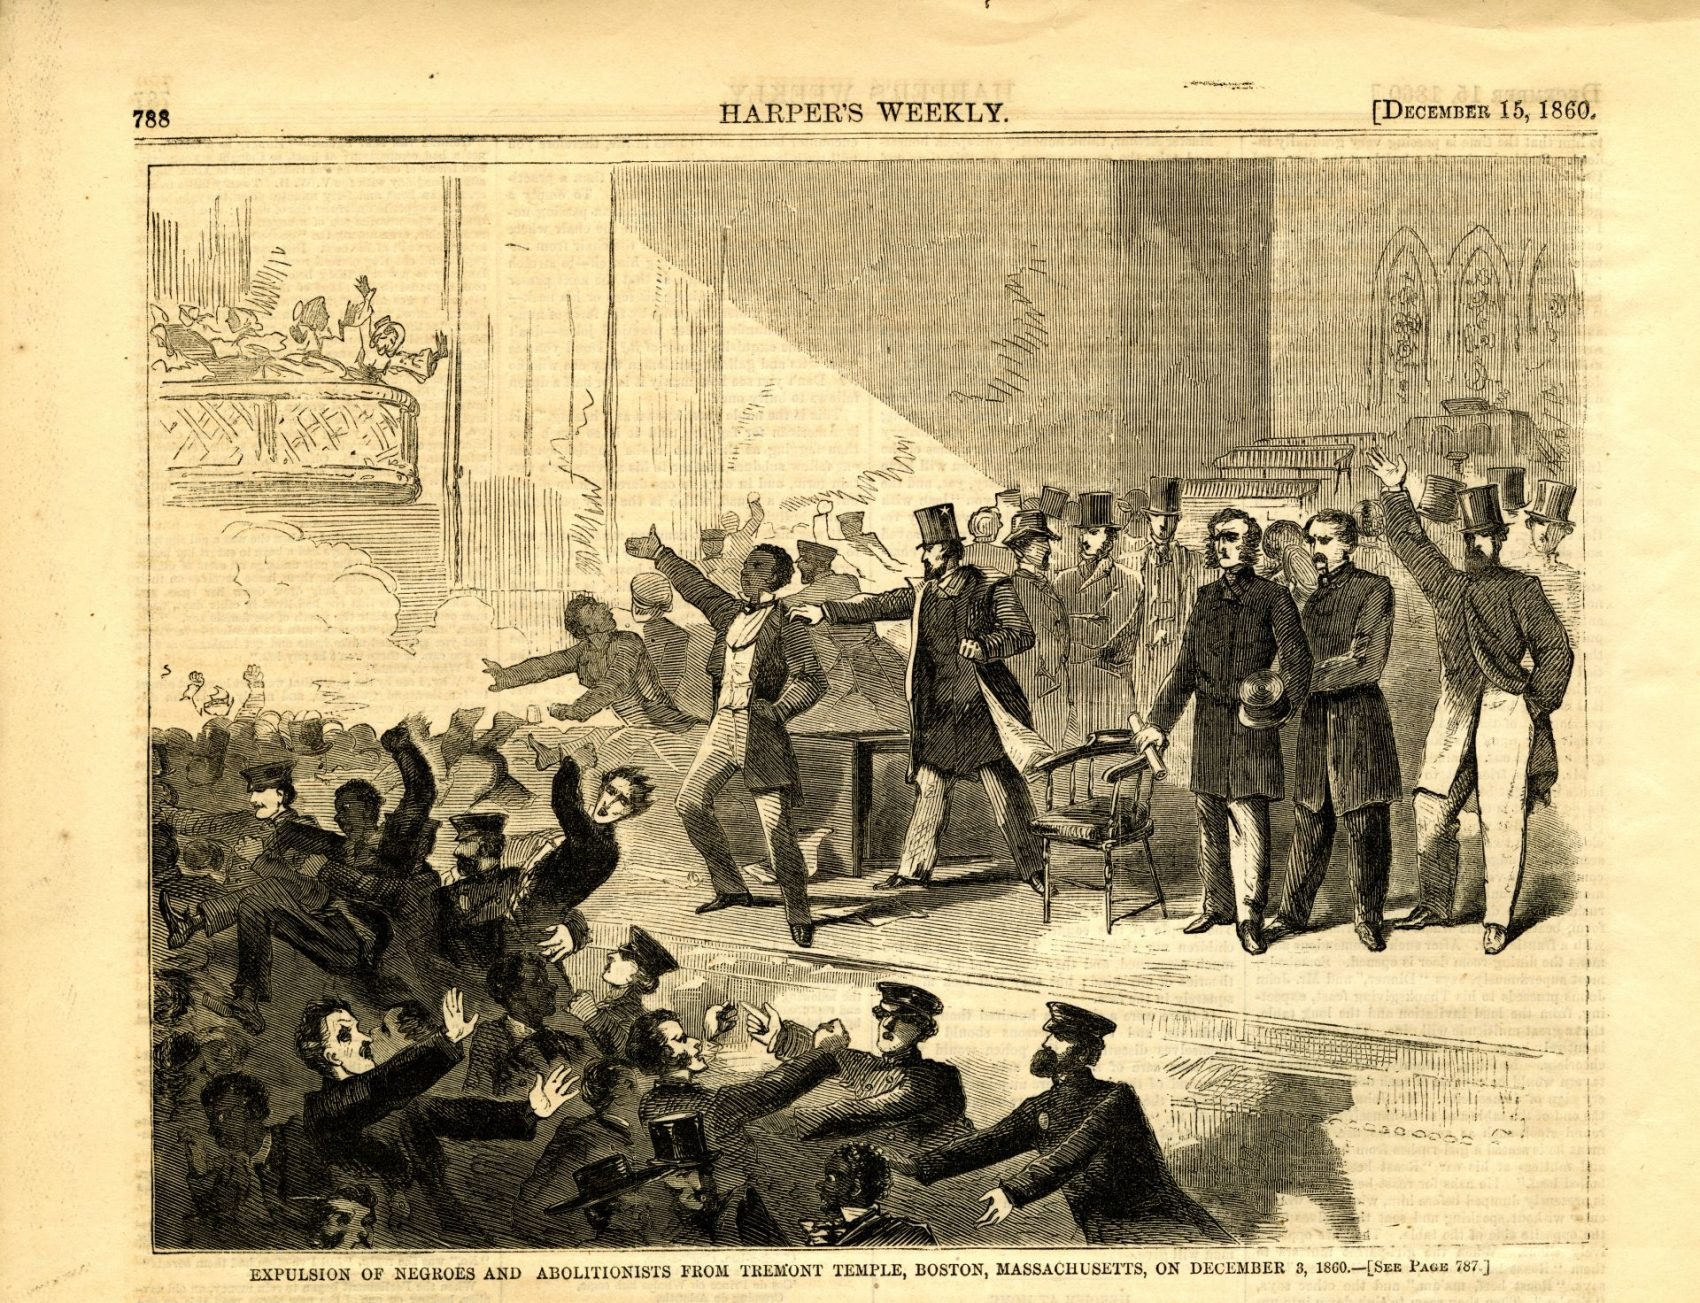 A clipping from Harper's Weekly depicting the expulsion of abolitionists from Tremont Temple in Boston in 1860. (Courtesy Museum of African American History)